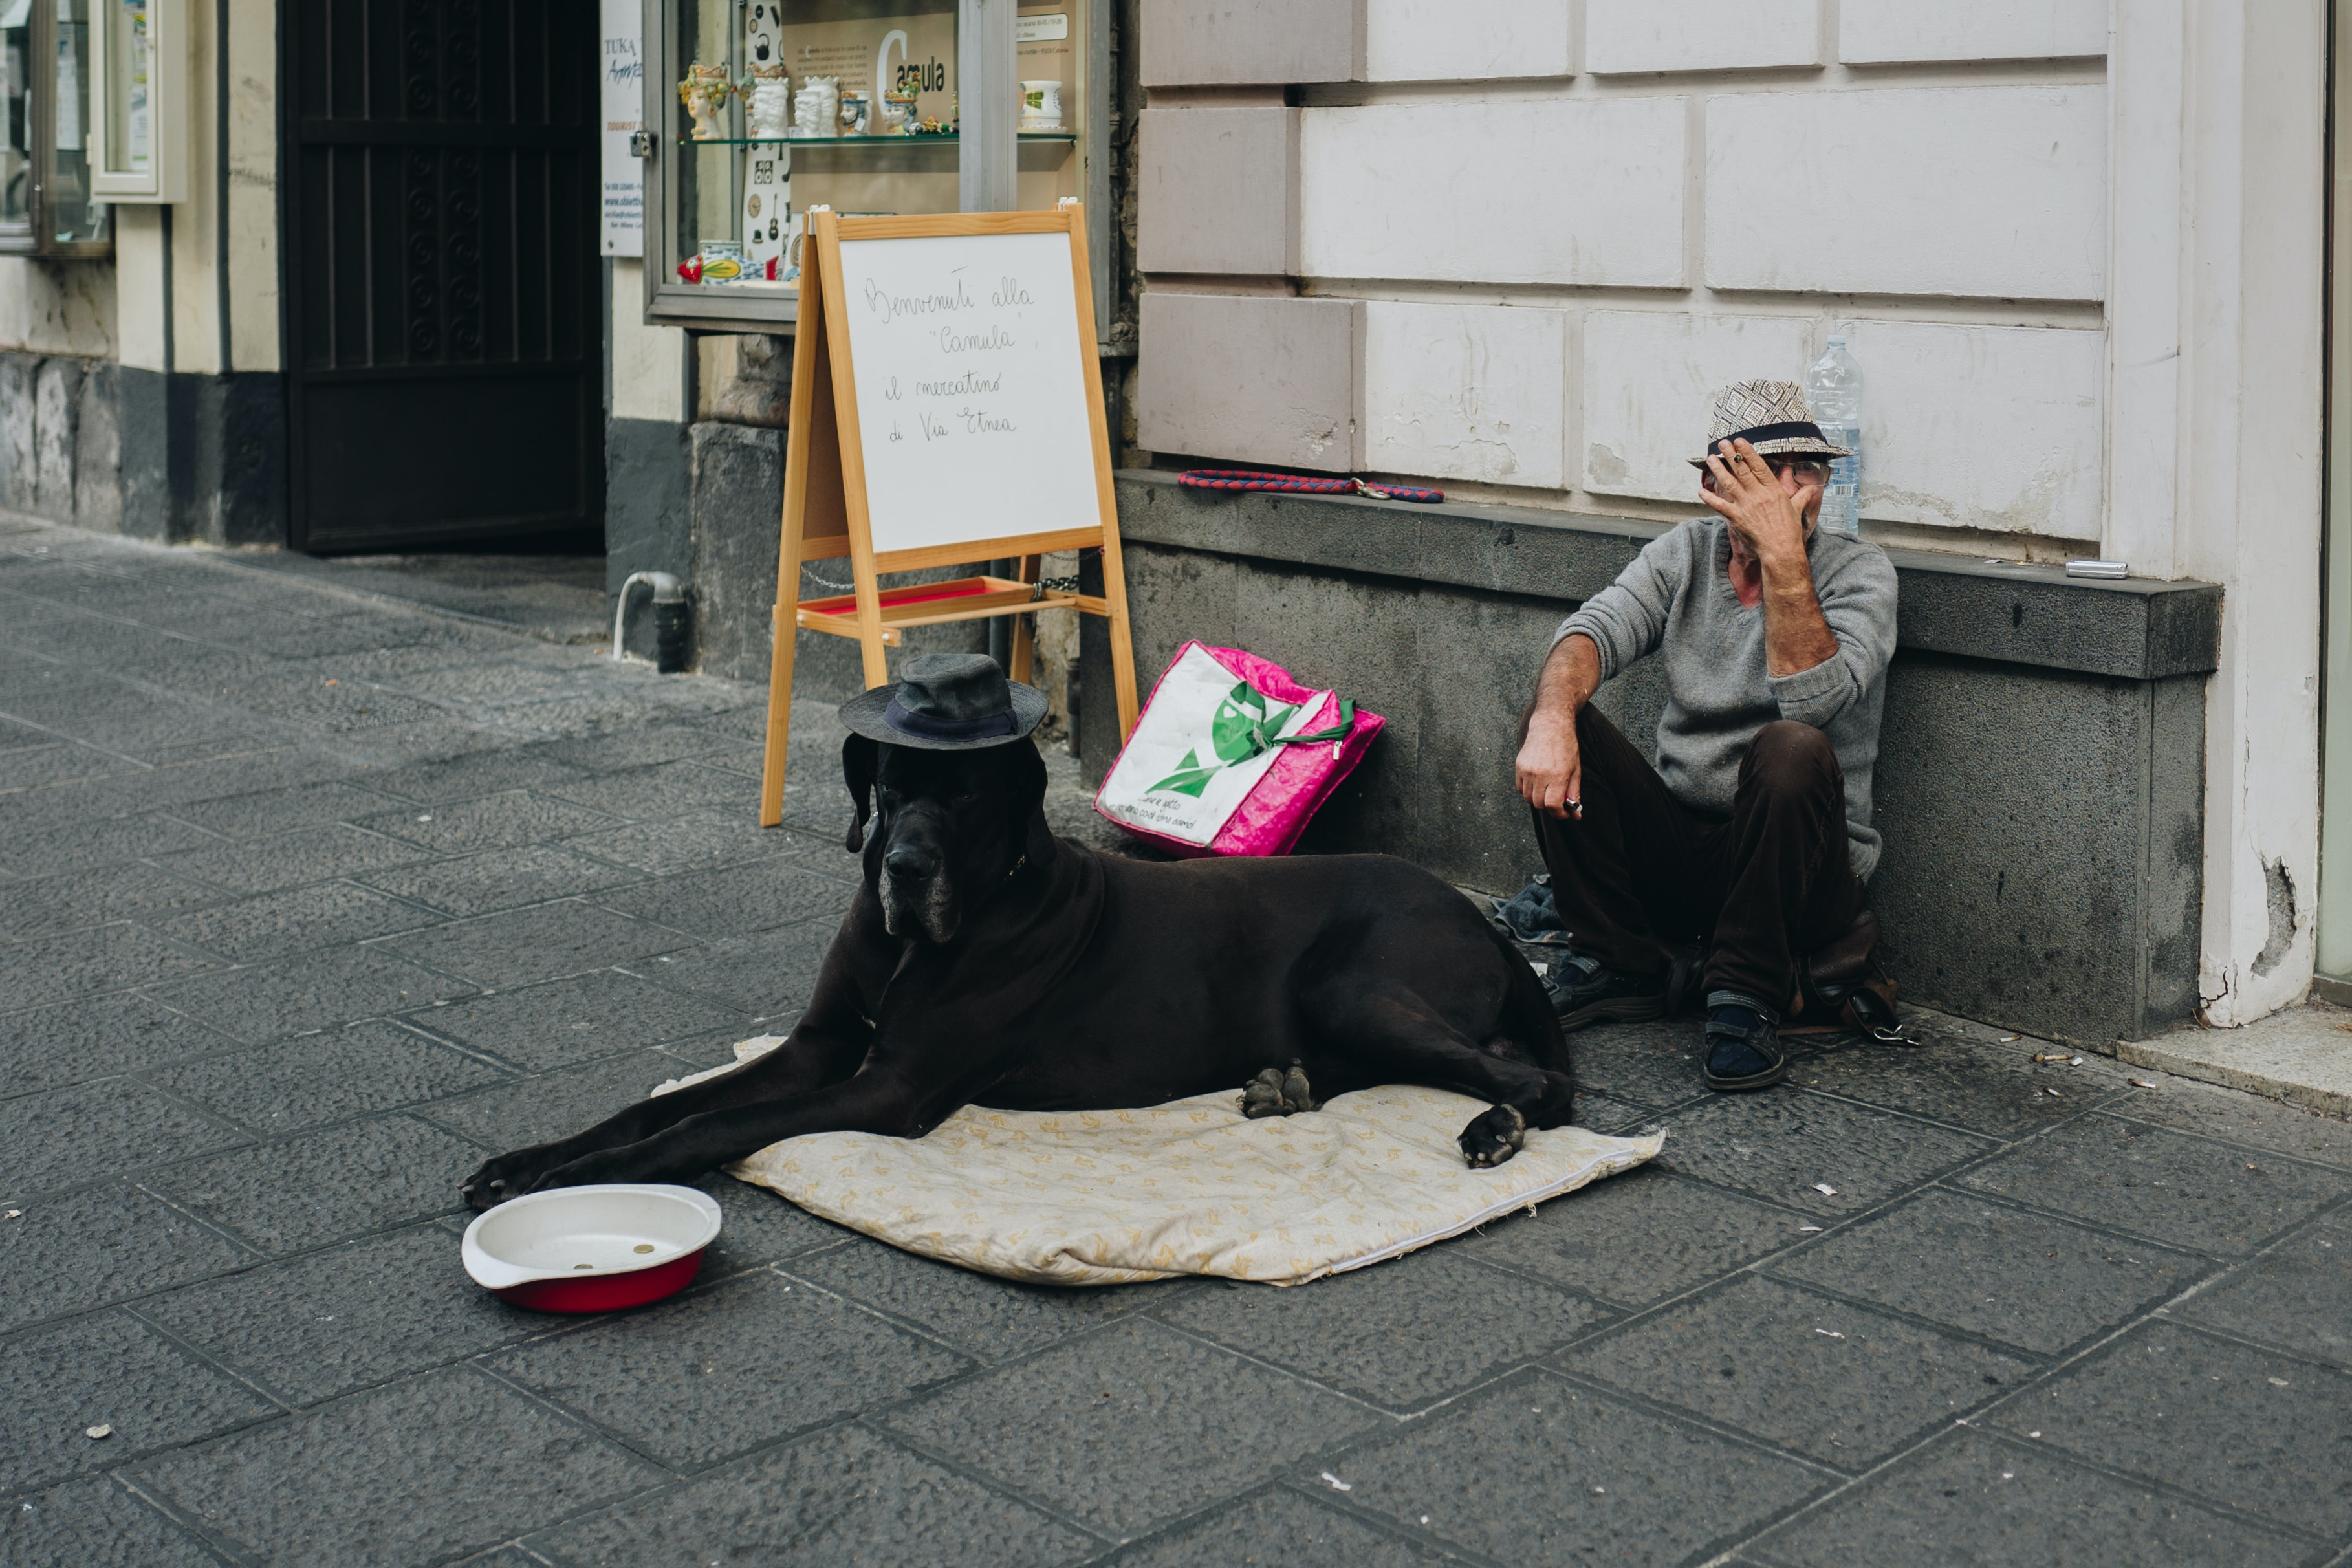 man sitting beside the dog